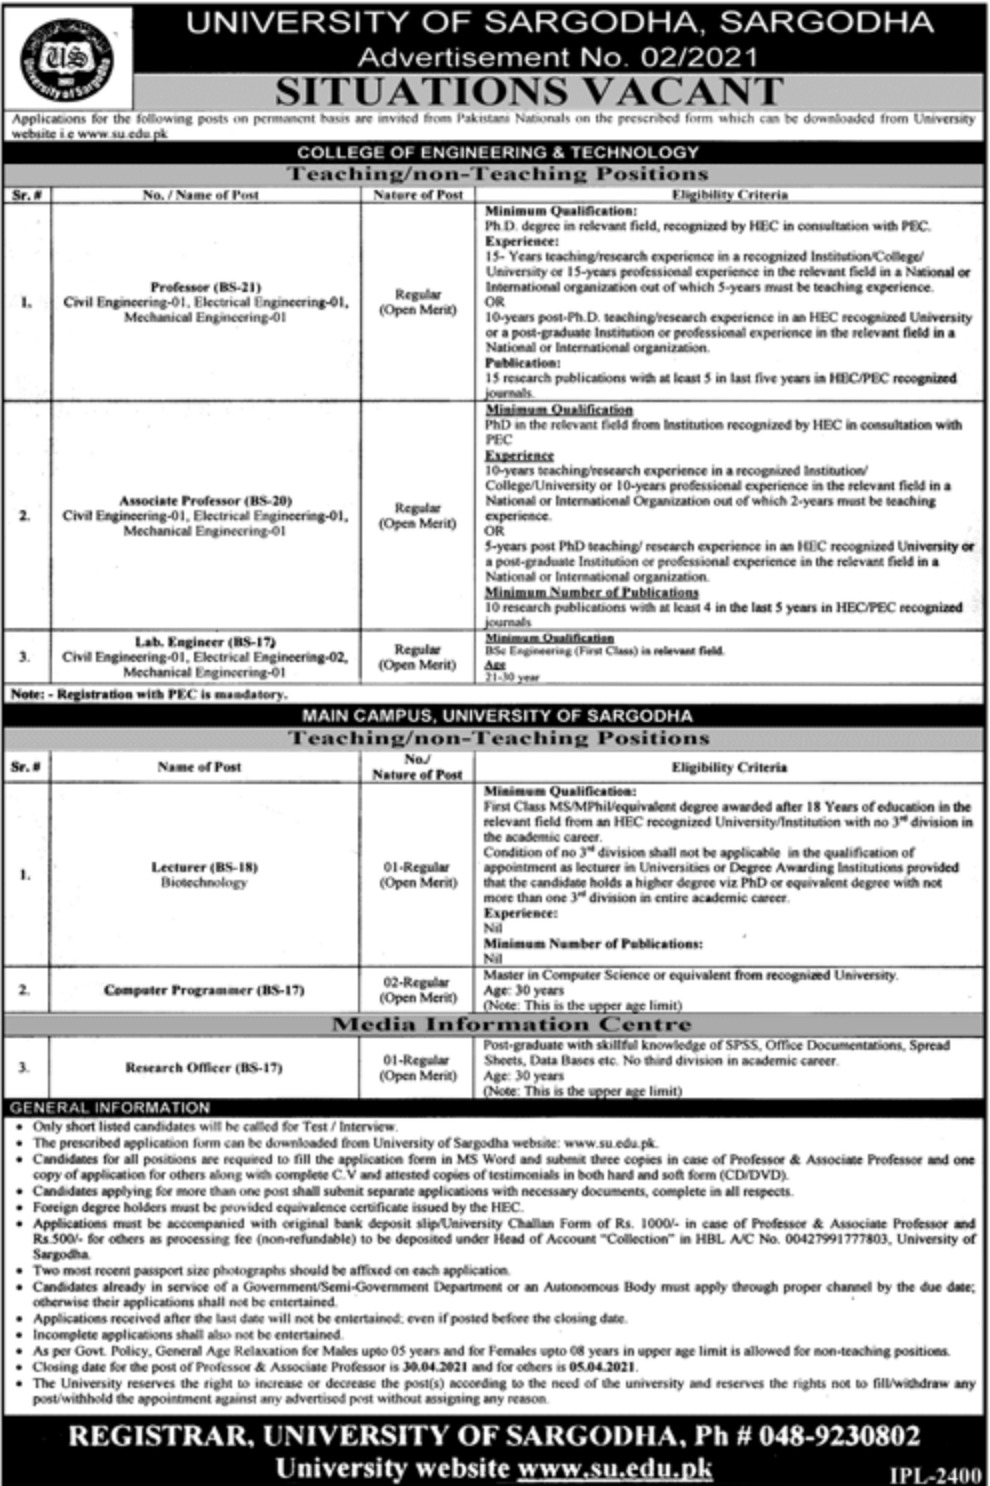 University of Sargodha Jobs March 2021